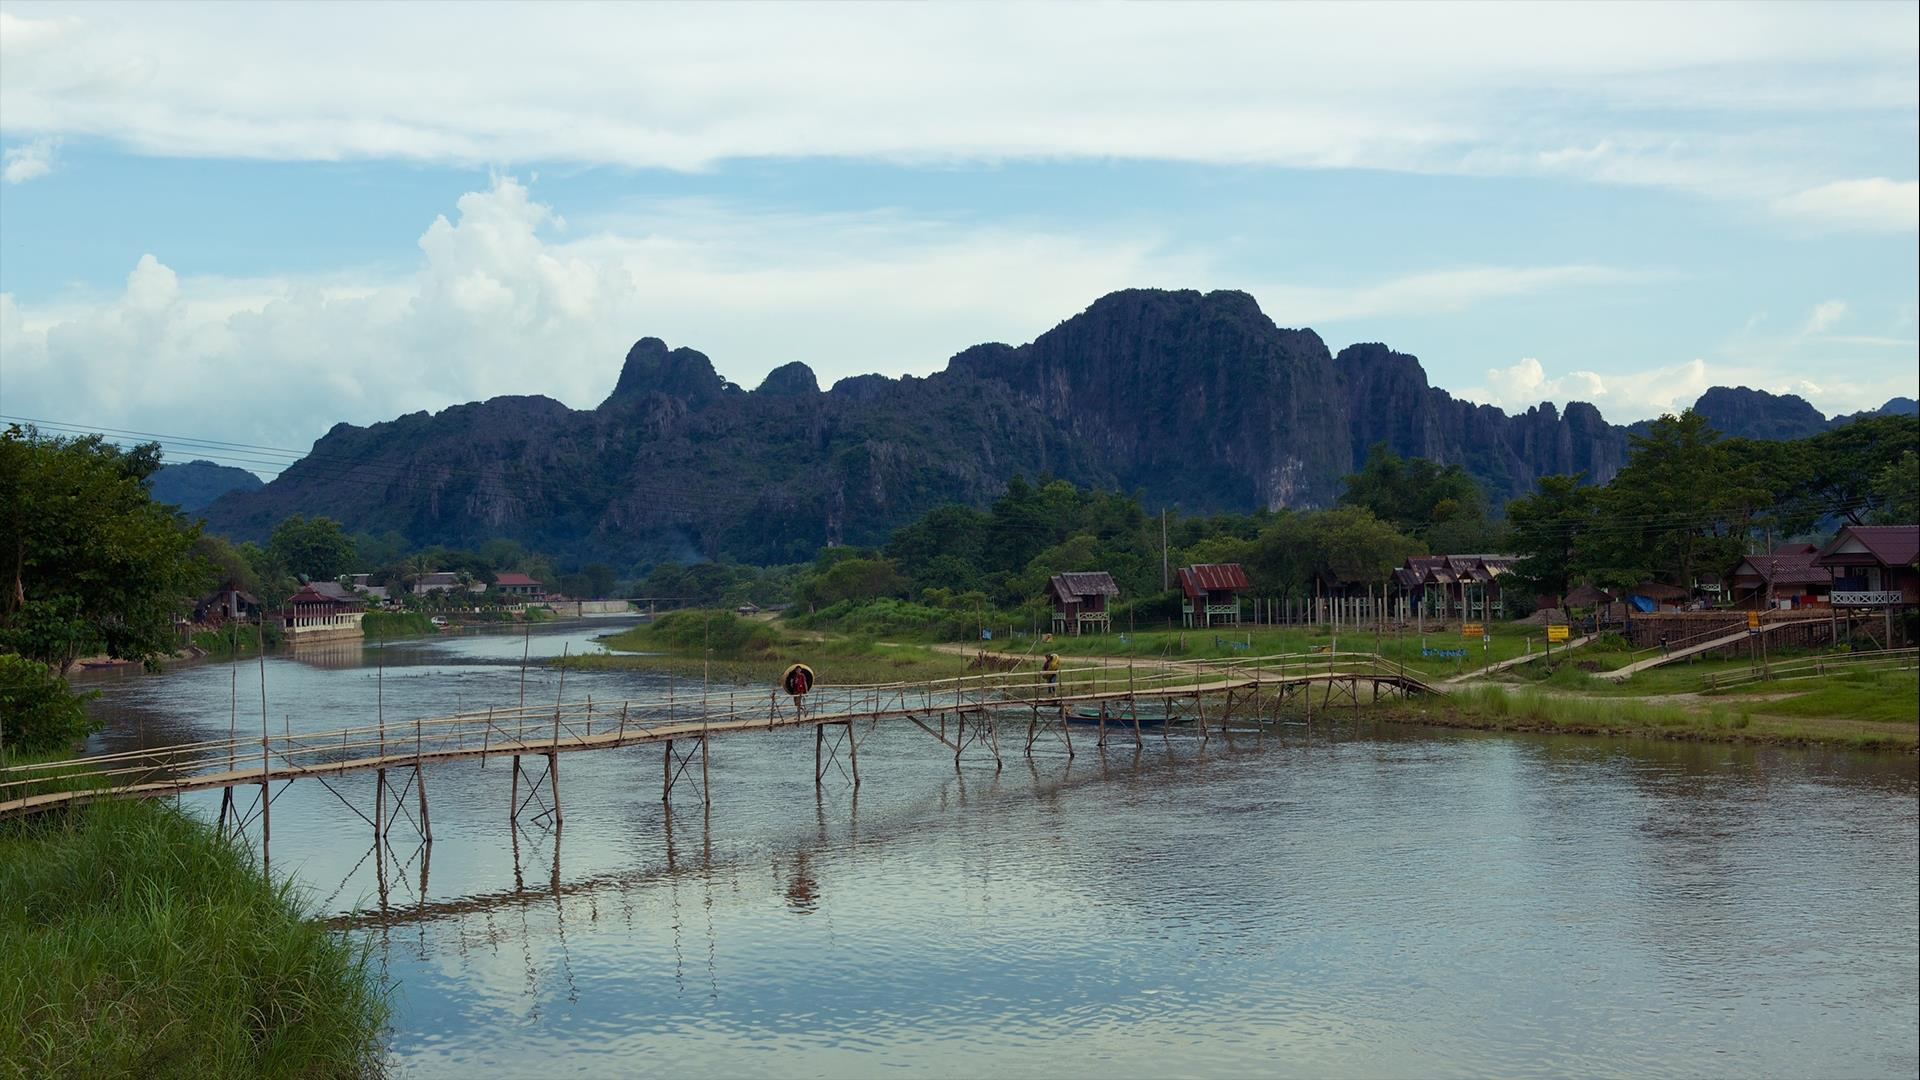 Laos, Vientiane to Luang Prabang: Capital Overland Tour - 2 Days | Laos Roadtrip